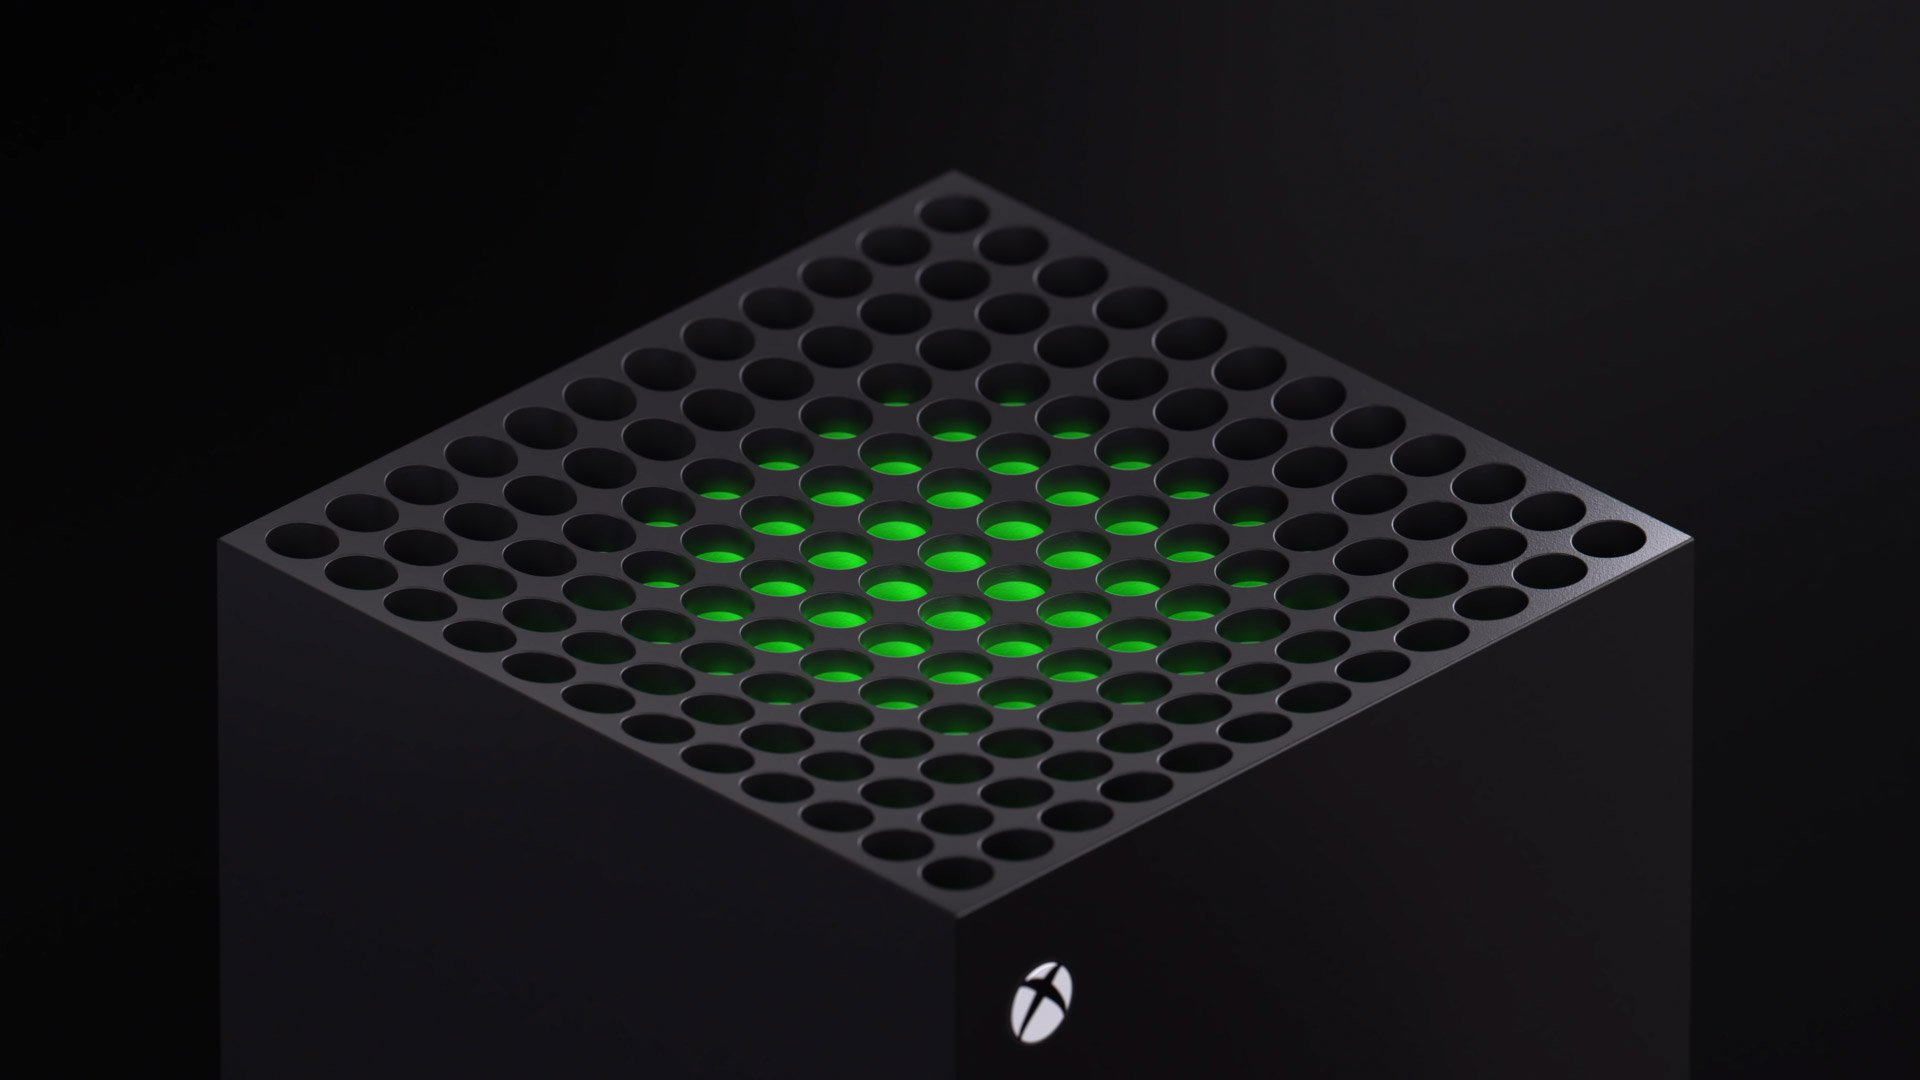 Xbox Series X's expandable storage is very expensive, but Microsoft says an SSD is necessary for new games screenshot